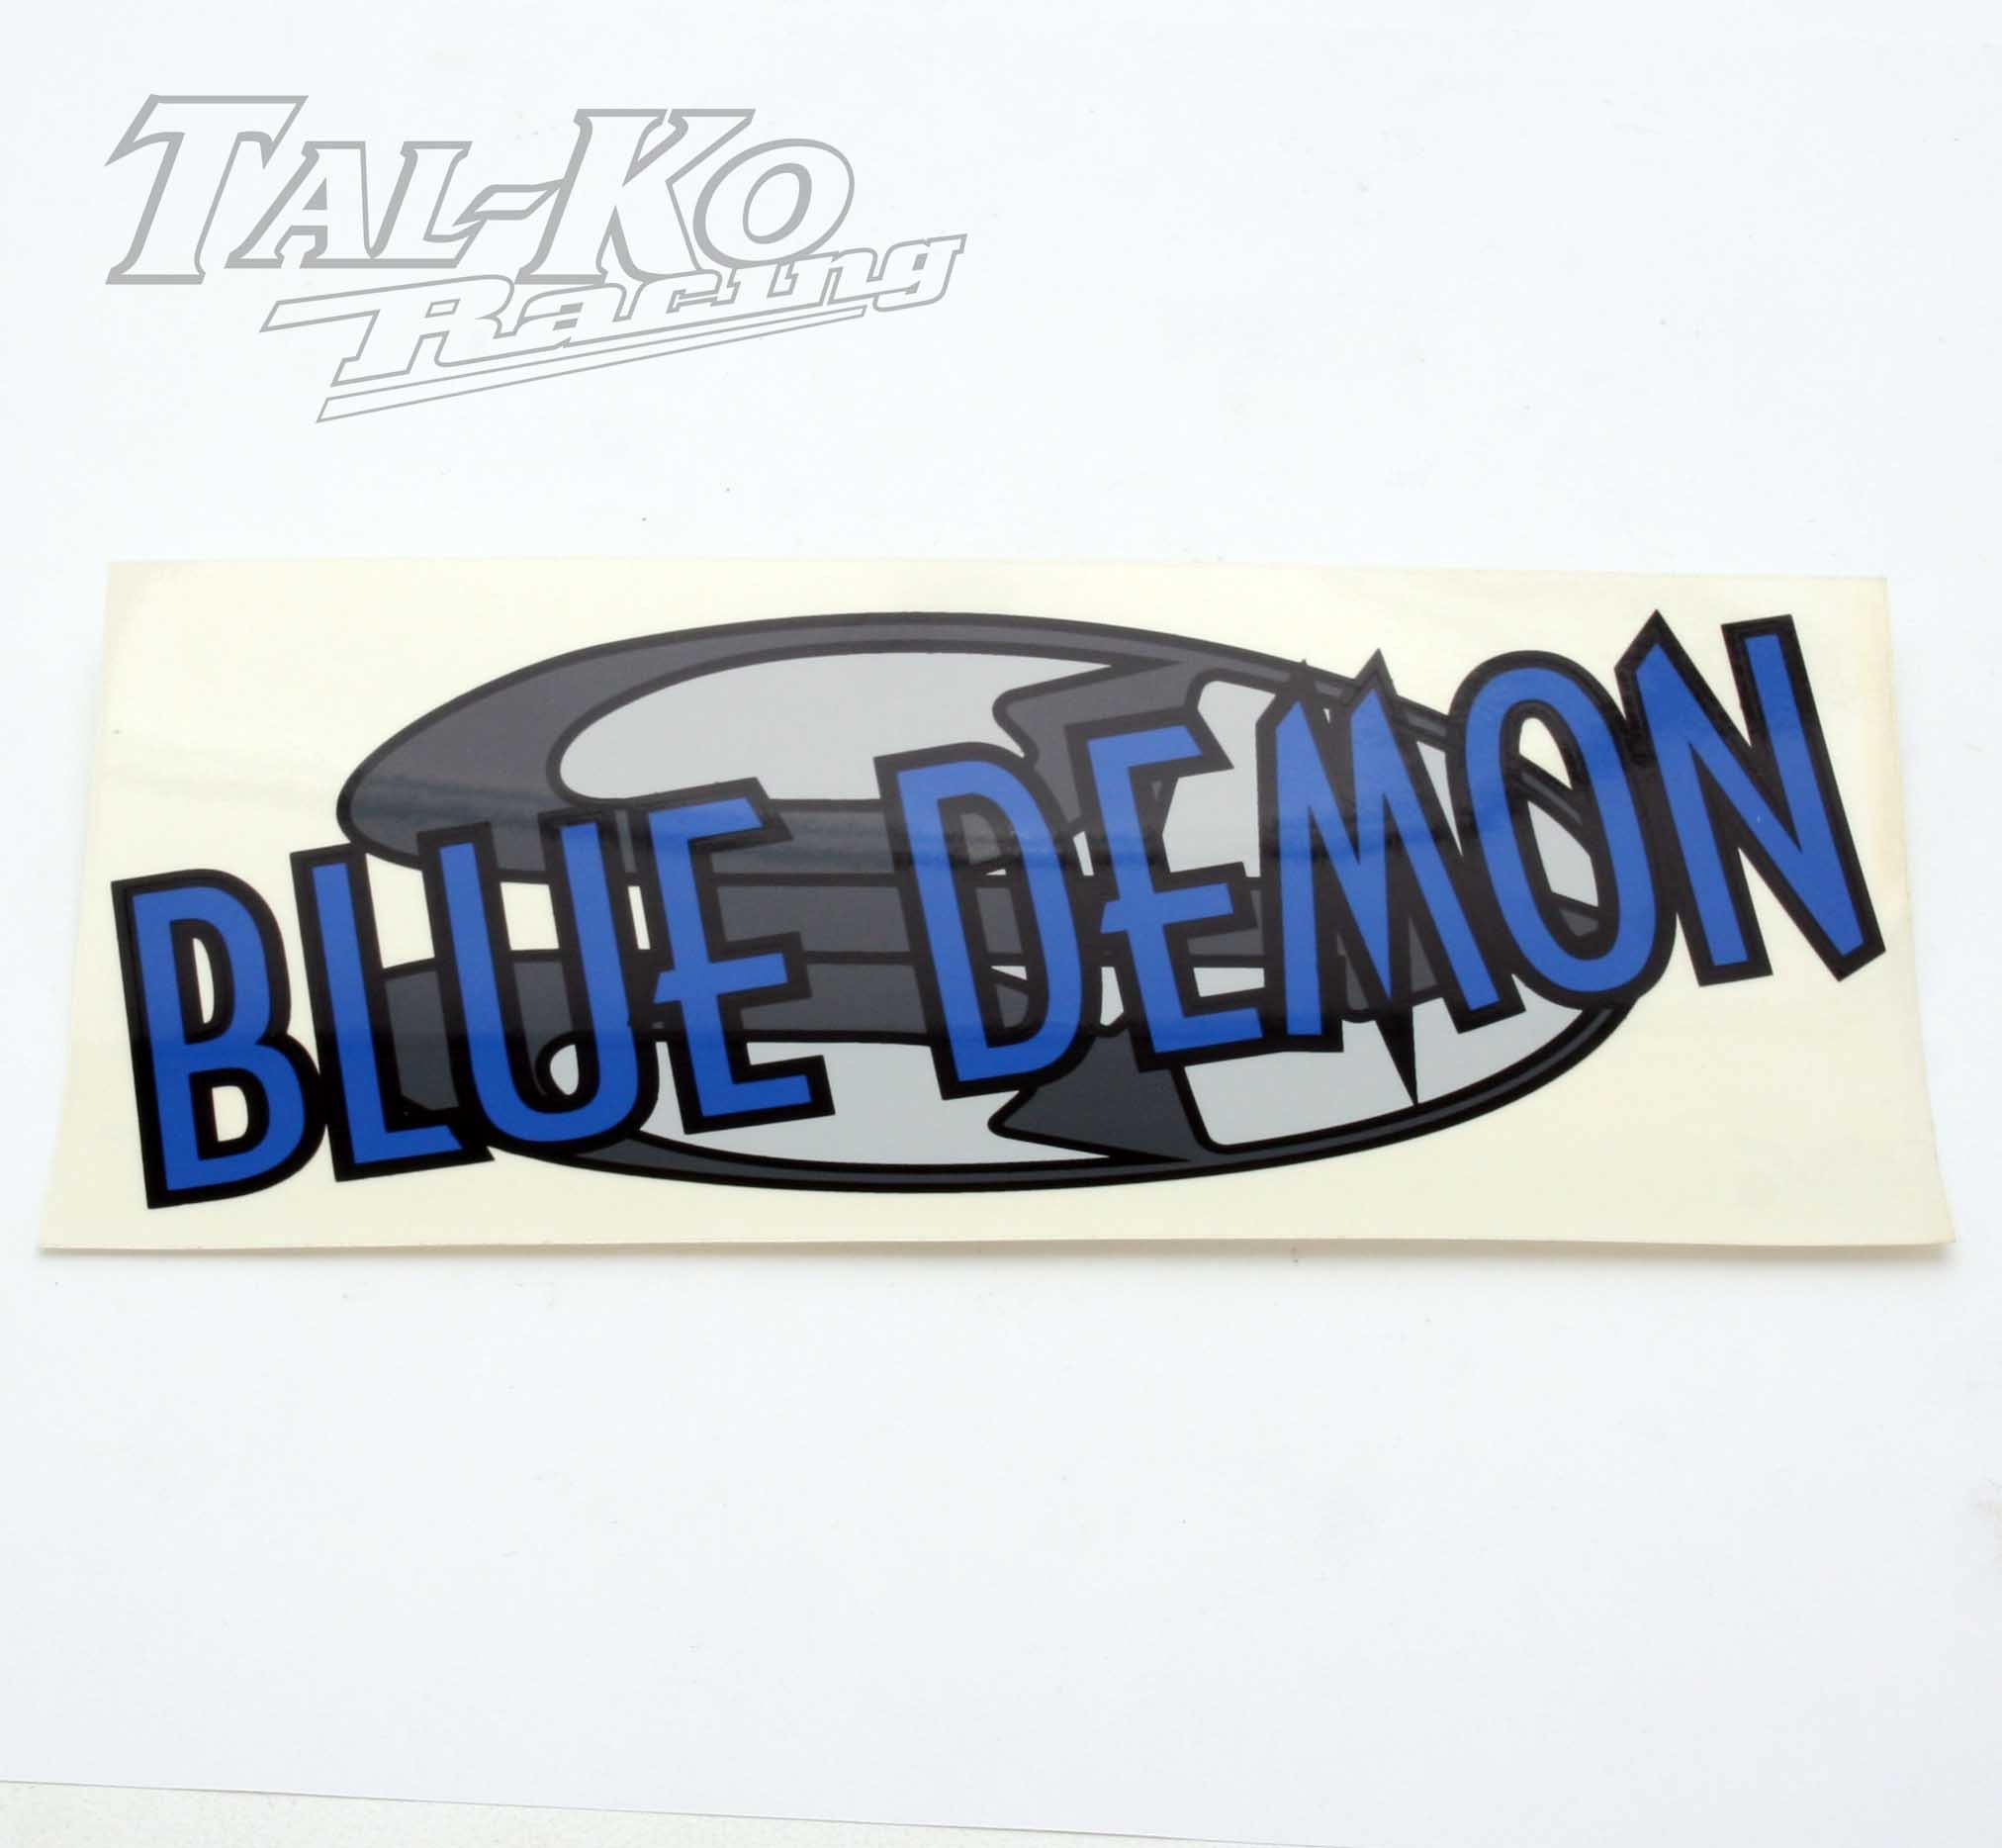 CRG BLUE DEMON STICKER DECAL 230 x 100